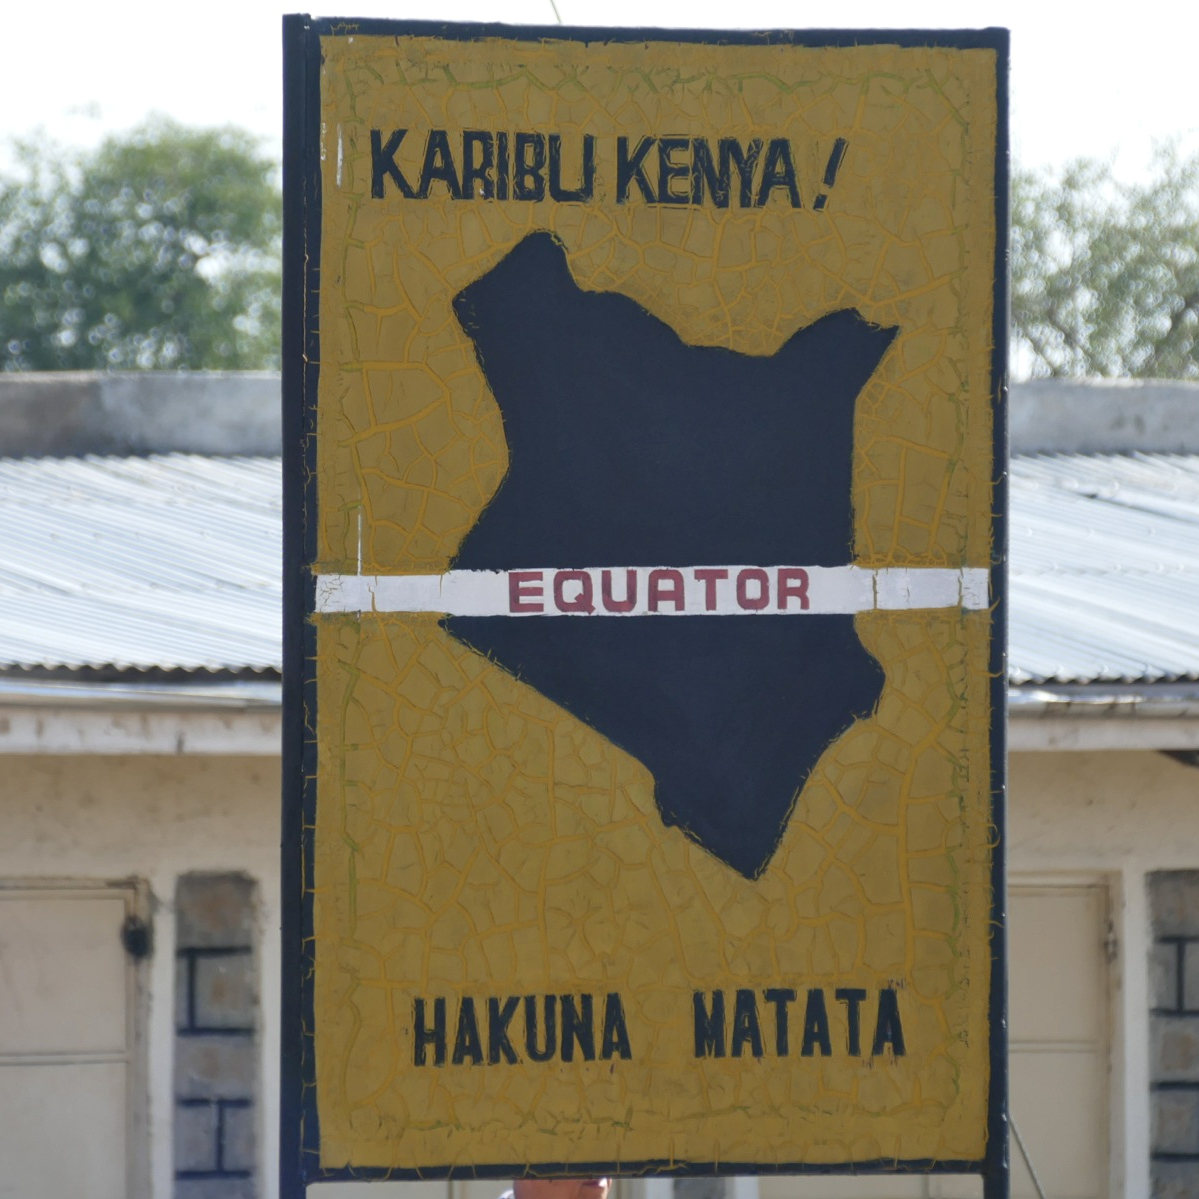 A road sign marks the equator north of Nairobi.